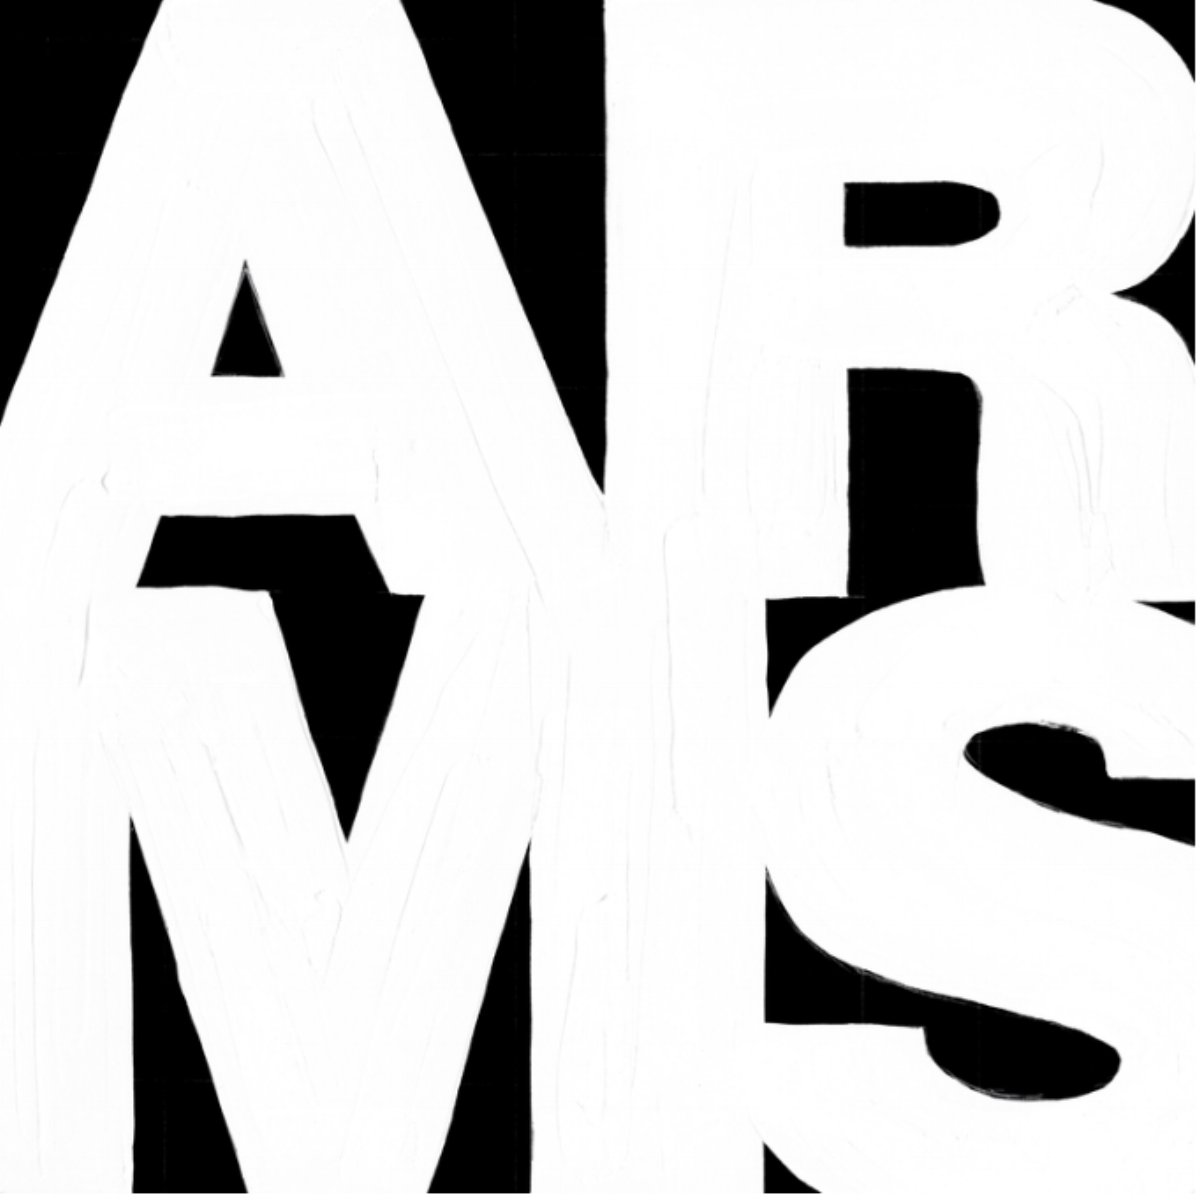 ARMS - Patterns